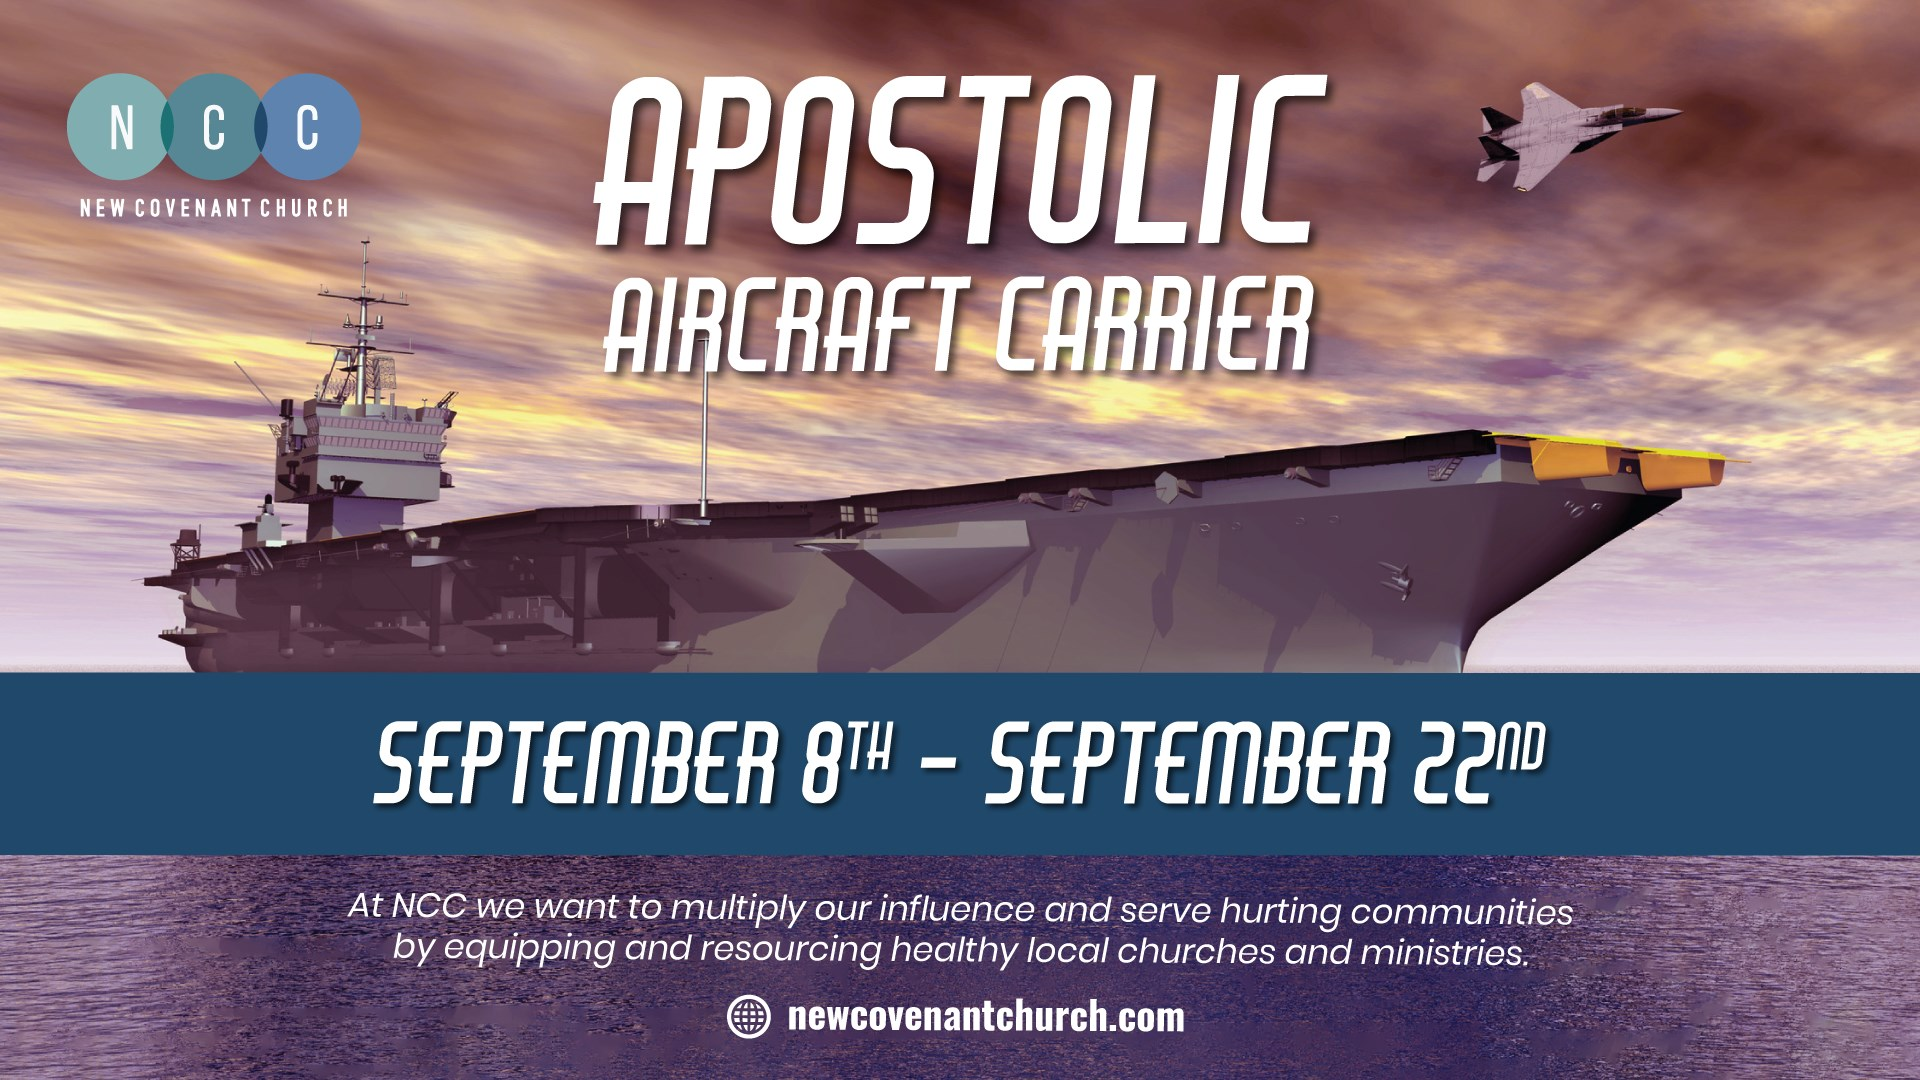 ApostolicAircraftCarrierSeries.jpg